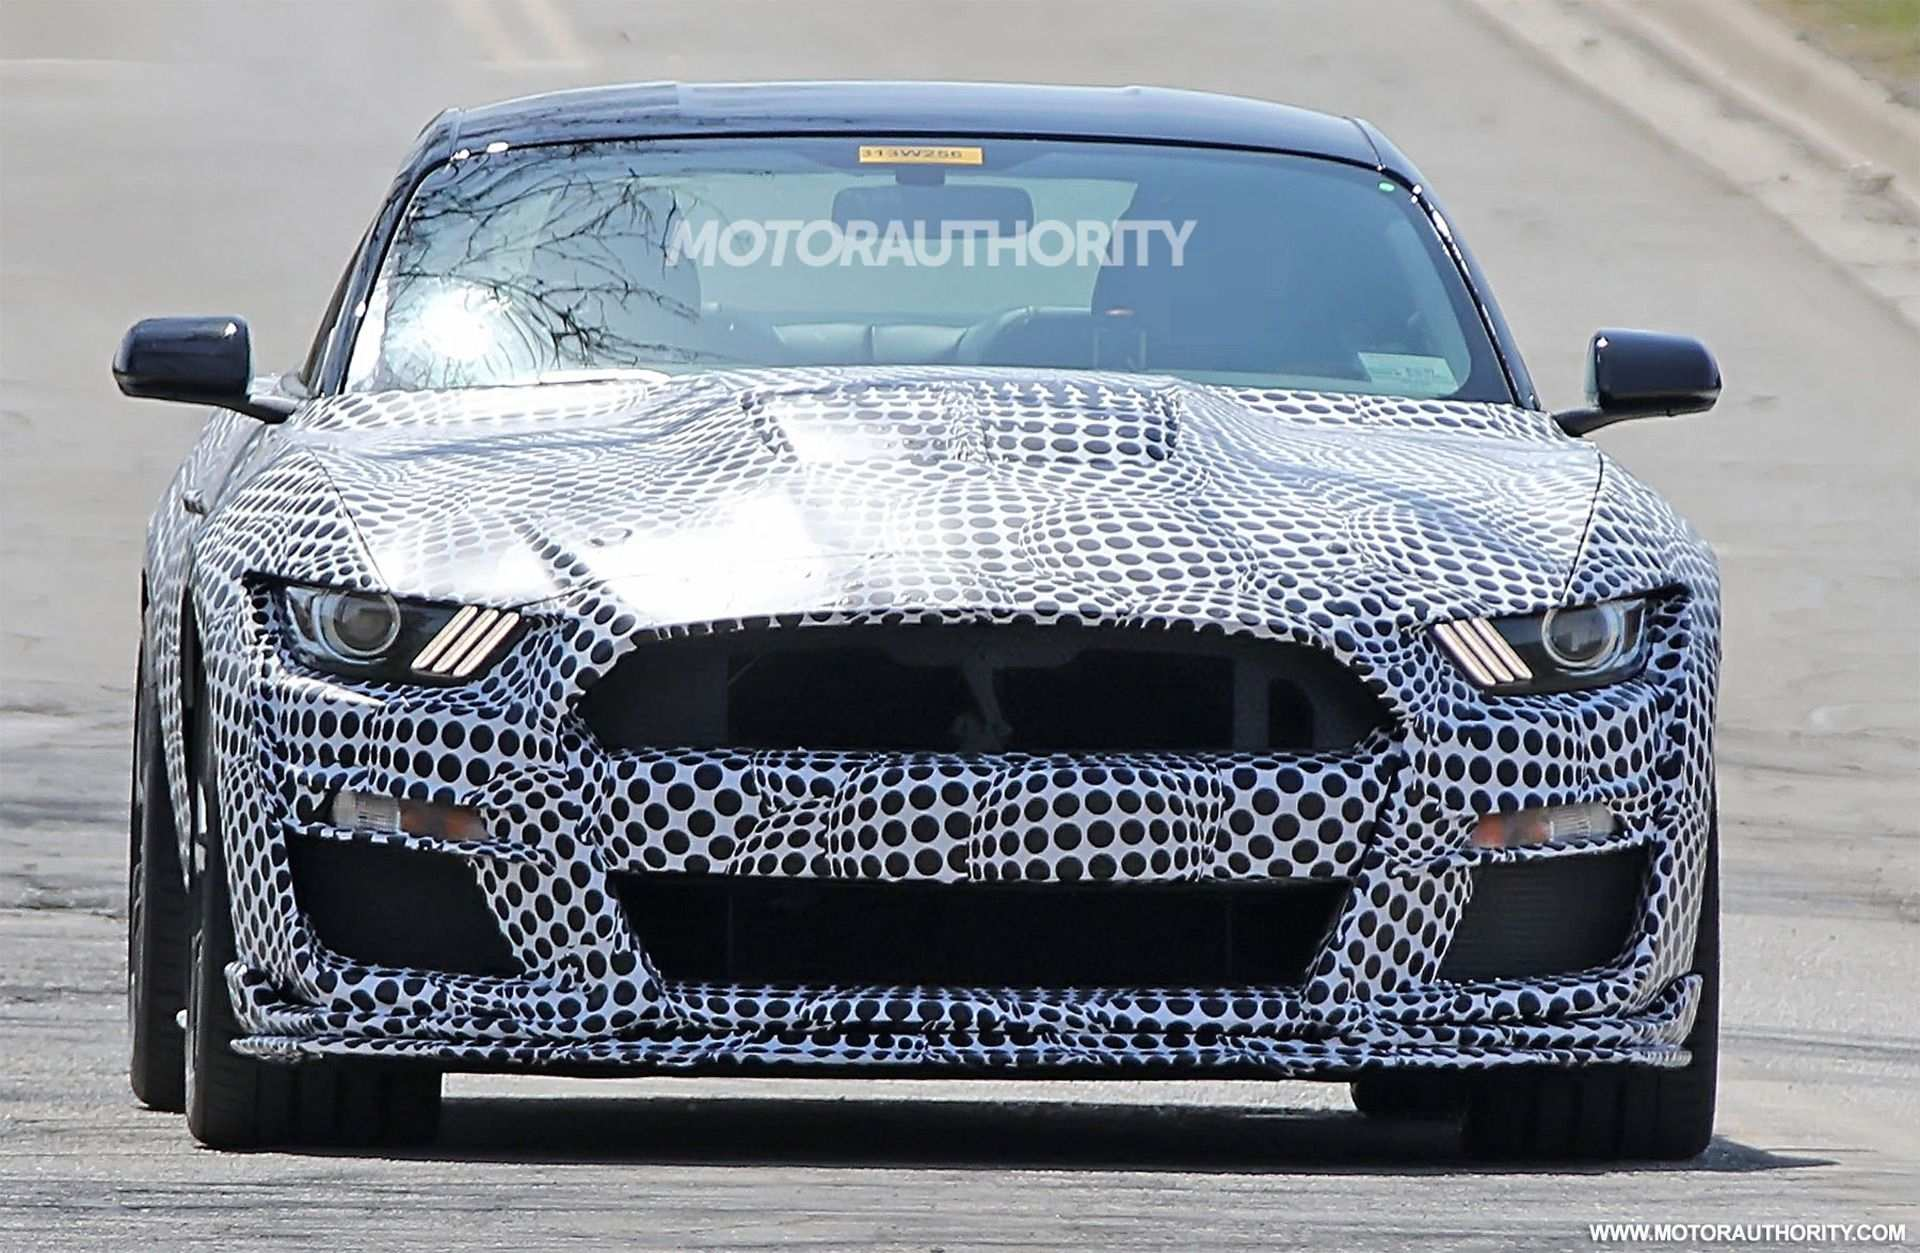 56 All New 2020 Ford Mustangand Review